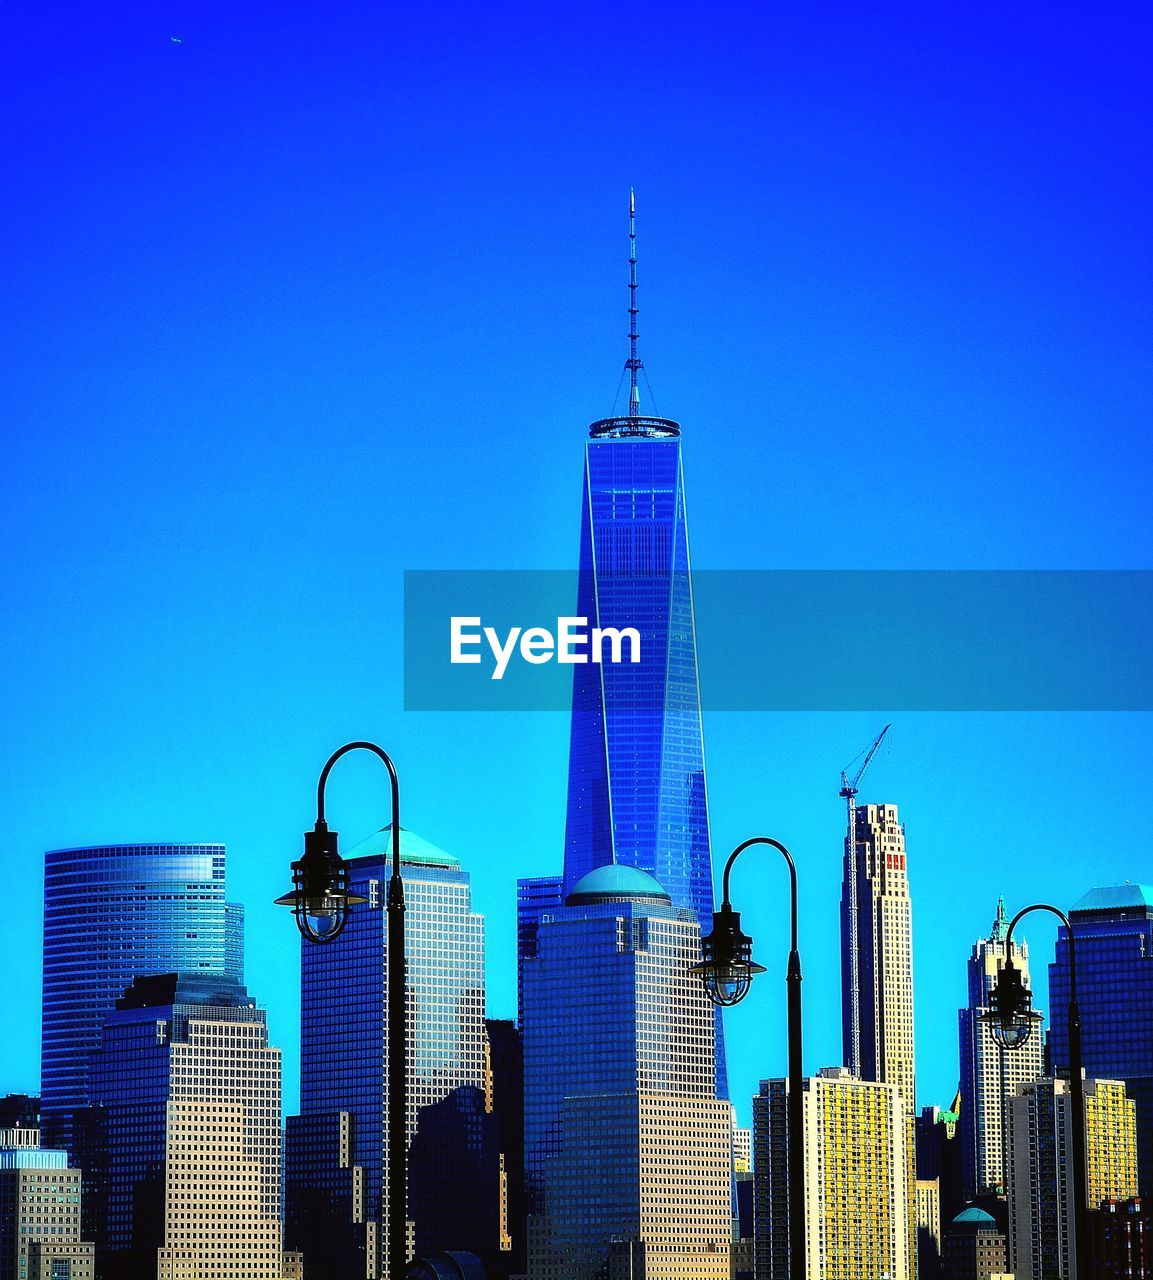 architecture, built structure, building exterior, blue, sky, office building exterior, skyscraper, building, tower, tall - high, city, clear sky, office, modern, travel destinations, nature, cityscape, no people, urban skyline, financial district, spire, outdoors